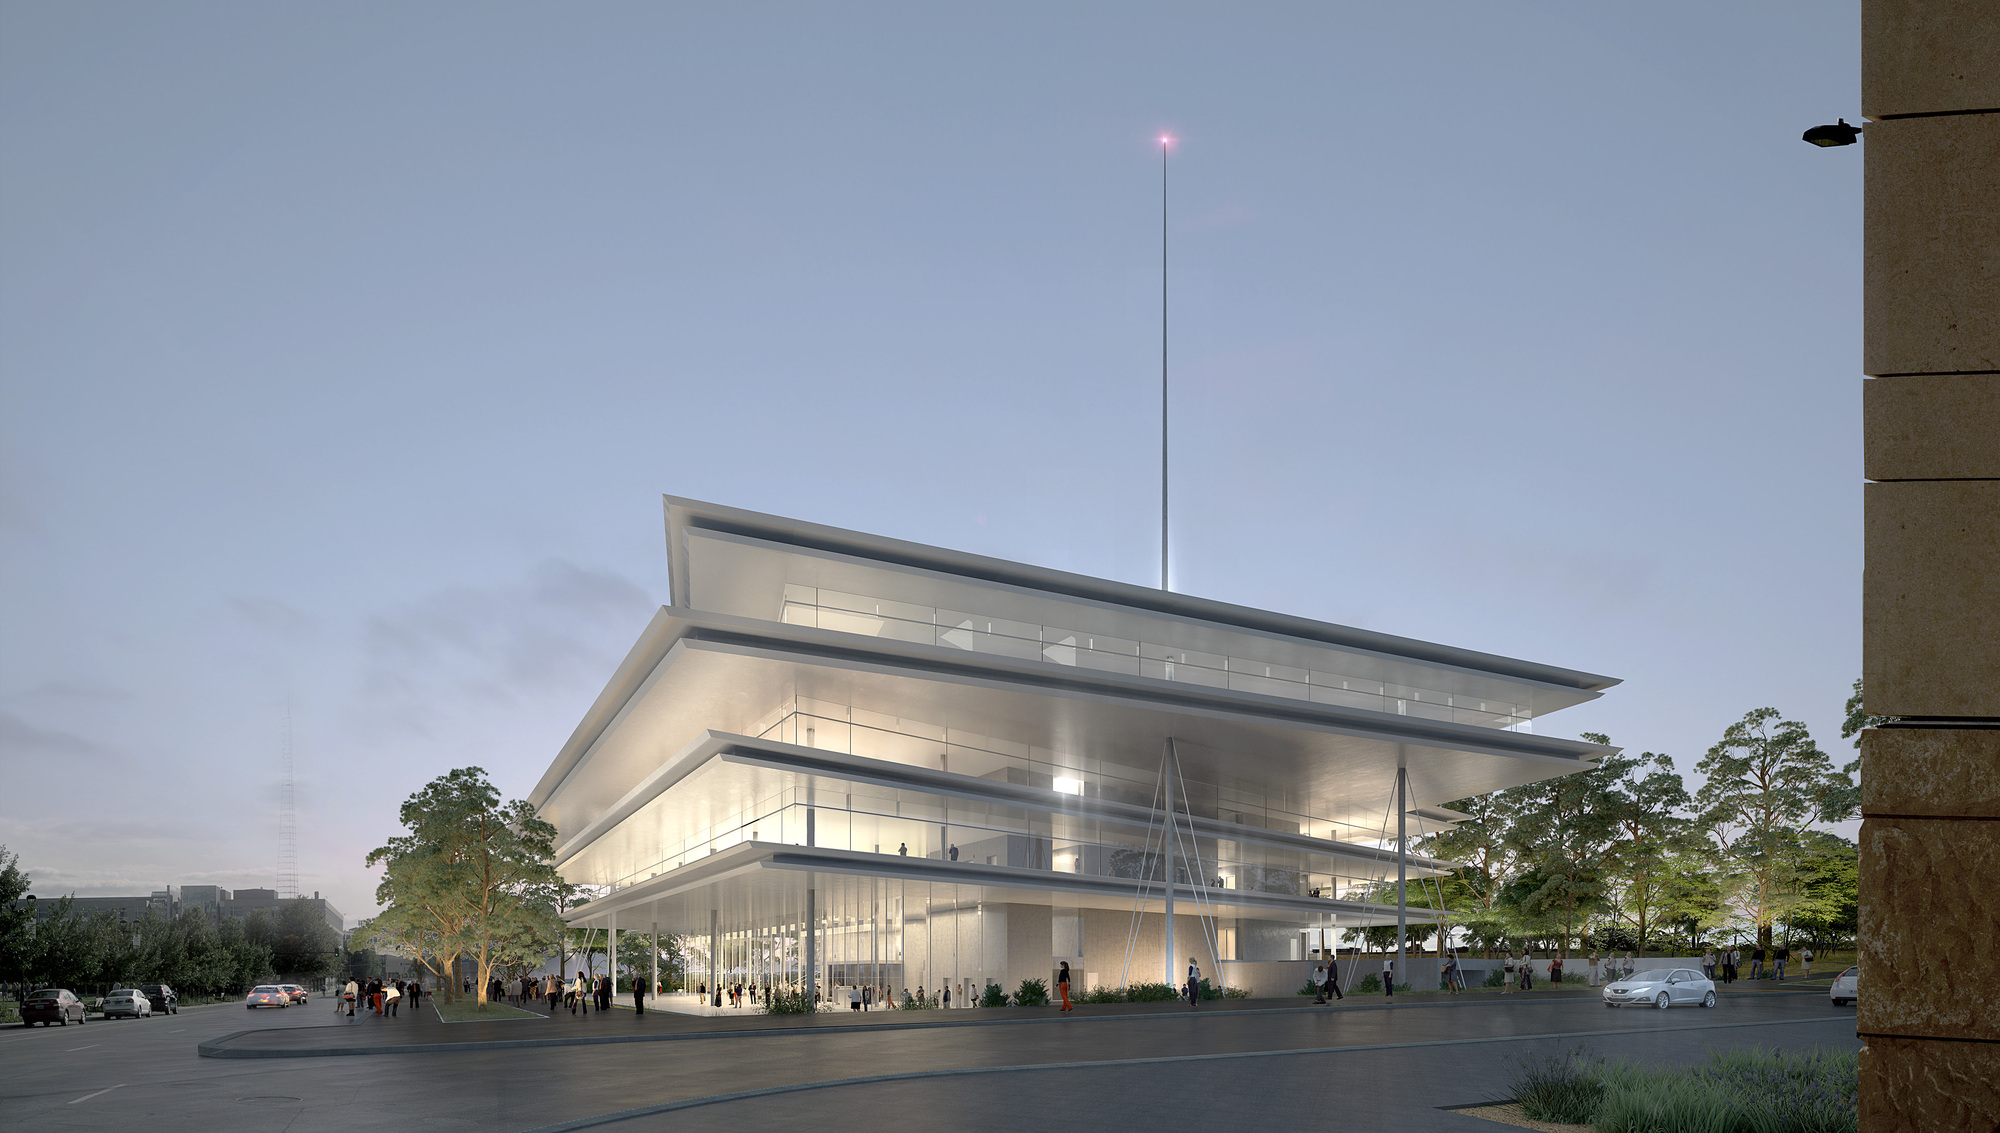 Renzo Piano Completes Krause Gateway Center In Des: Gallery Of Renzo Piano To Break Ground On Des Moines' Kum